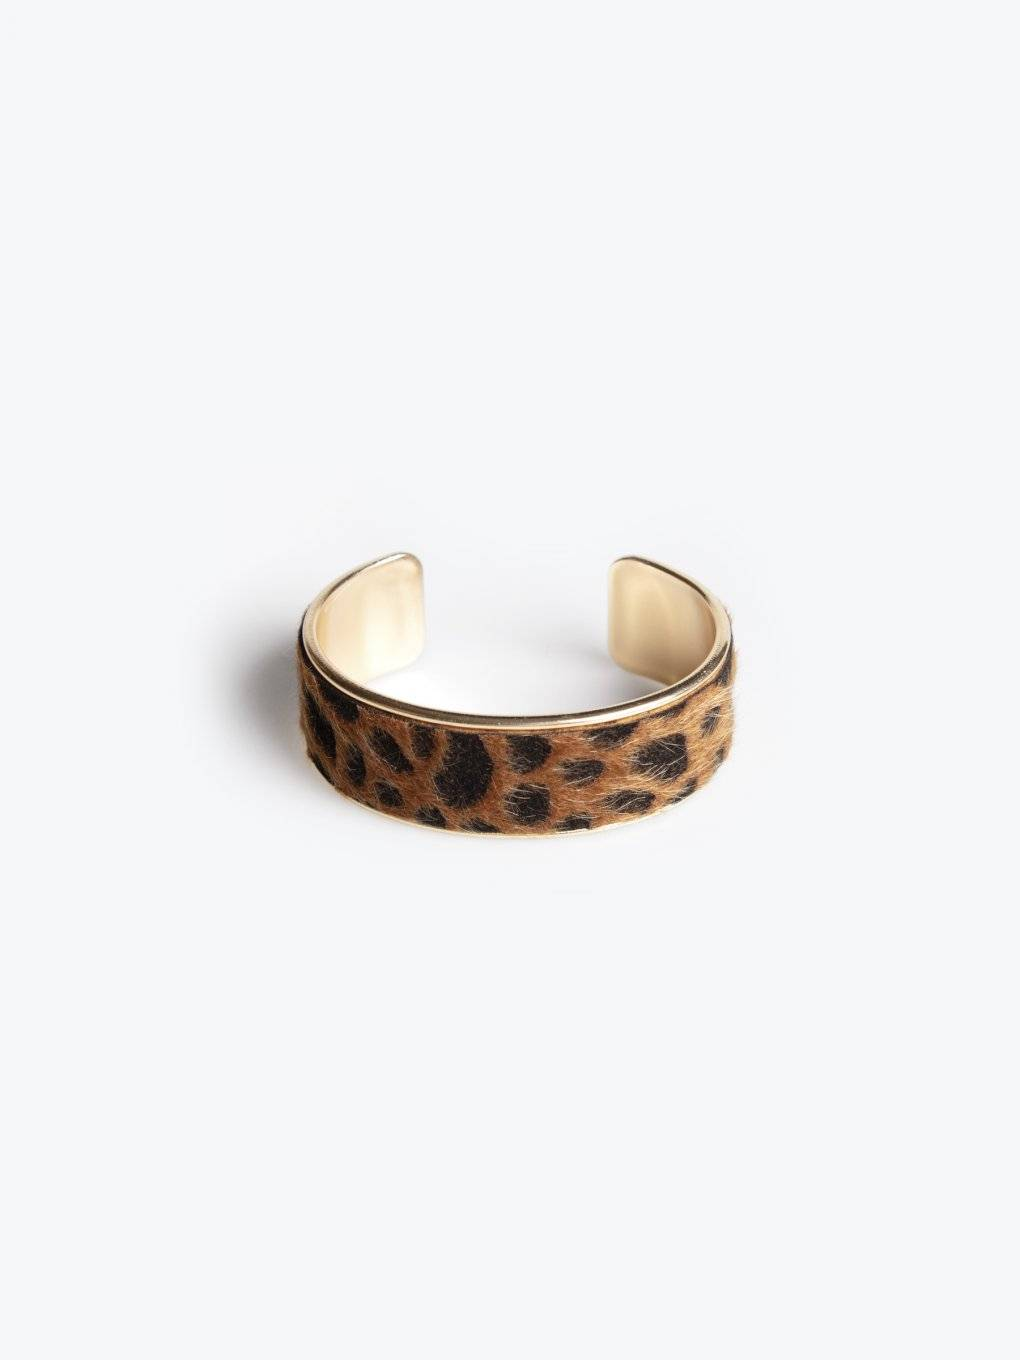 Bracelet with animal design